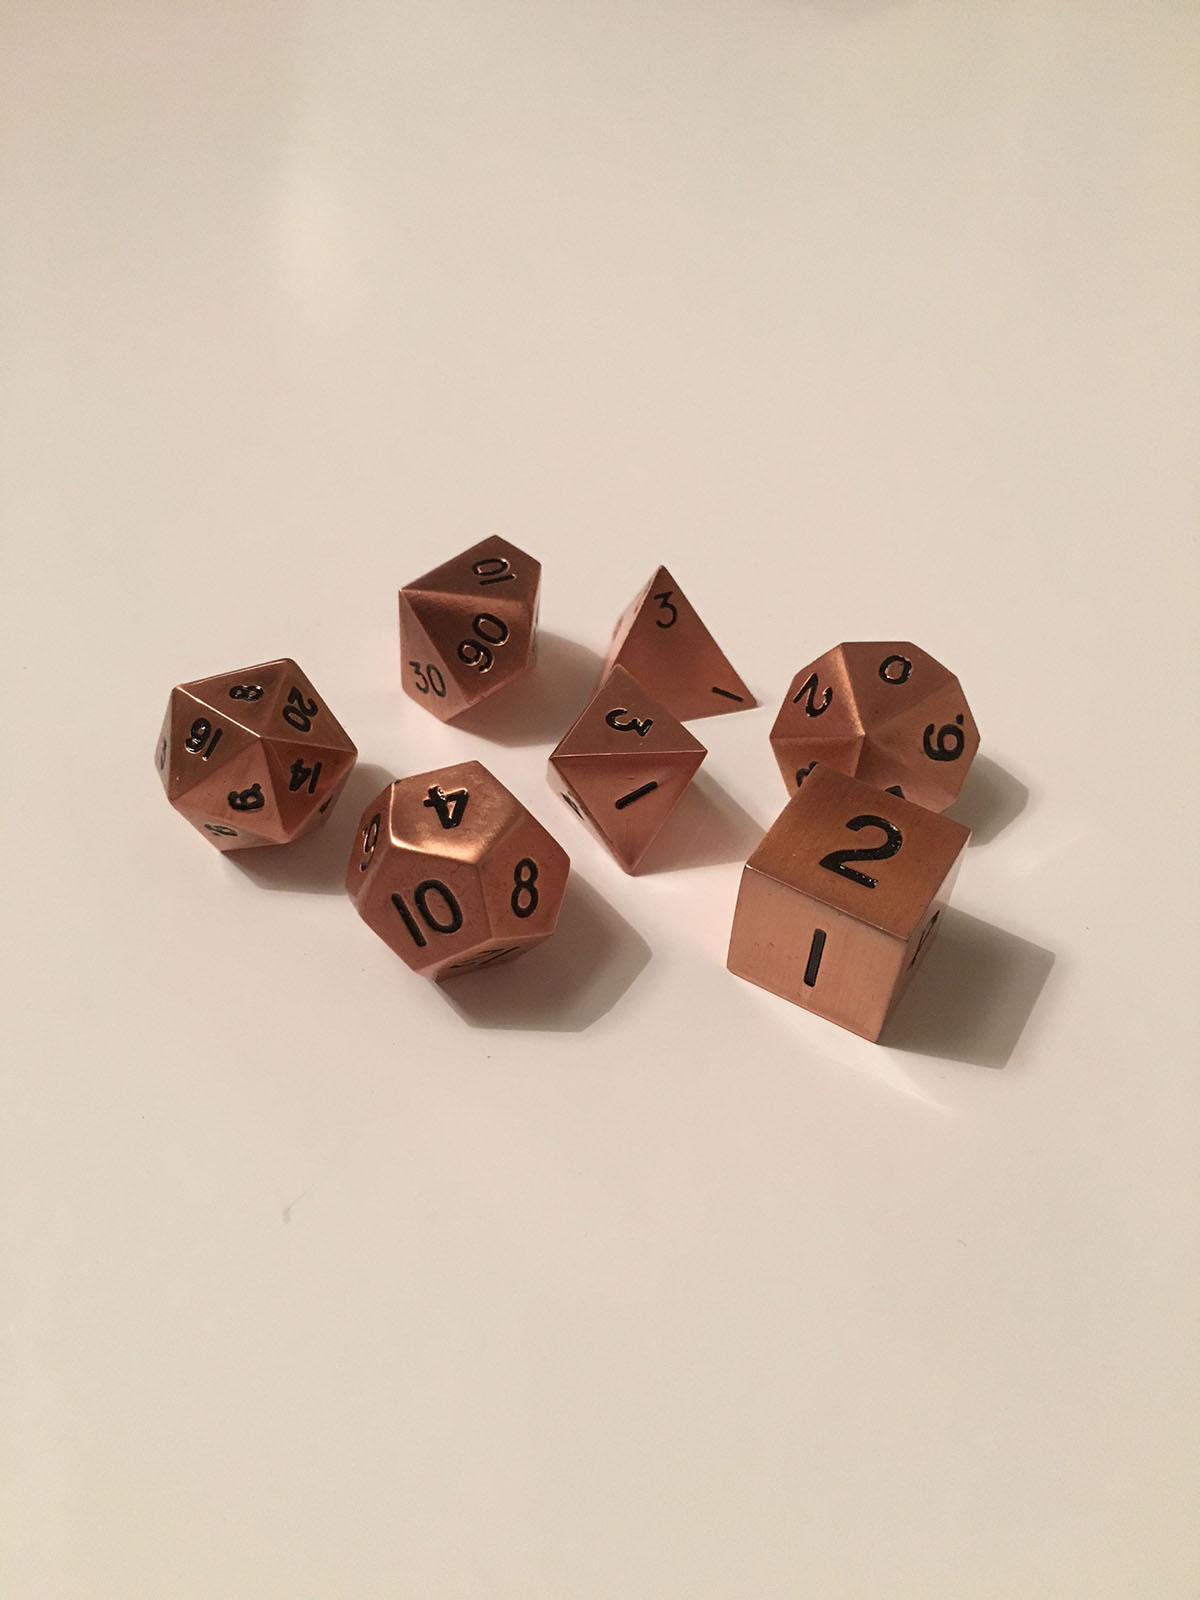 Essential Tabletop RPG Gear (Part 1): Dice